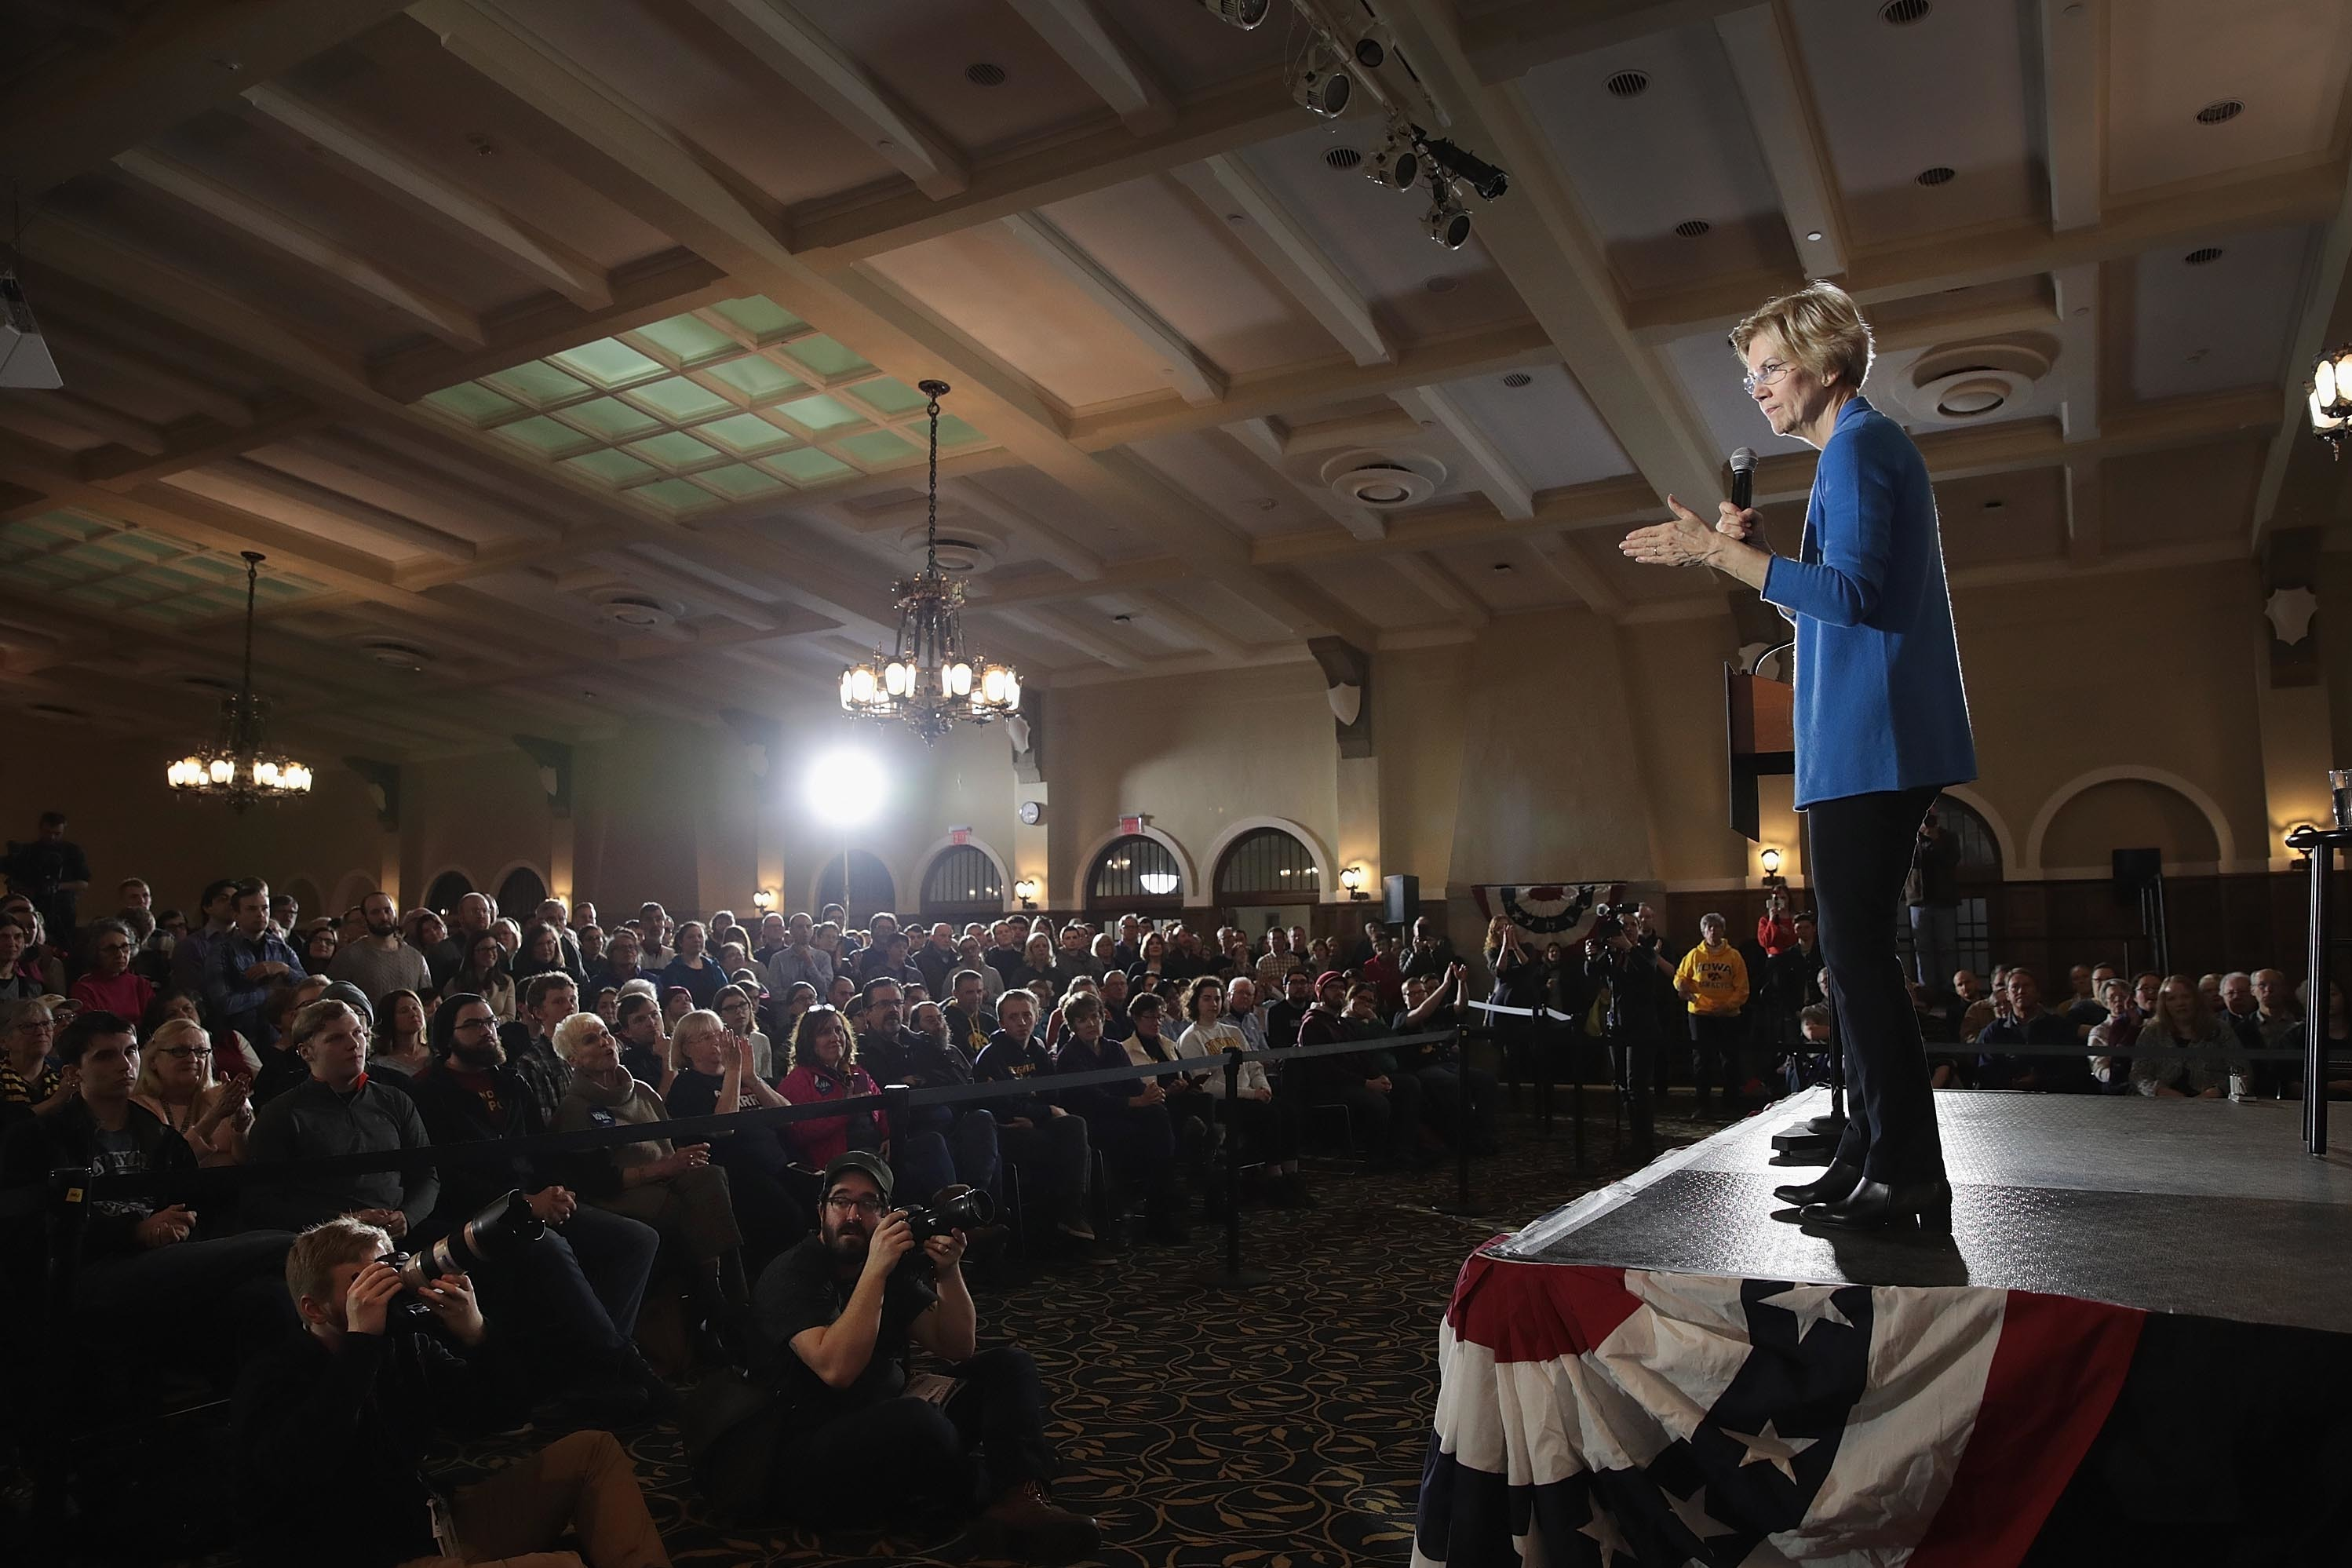 Warren Focuses On Policy, Which Looks Like A Tough Sell With Voters